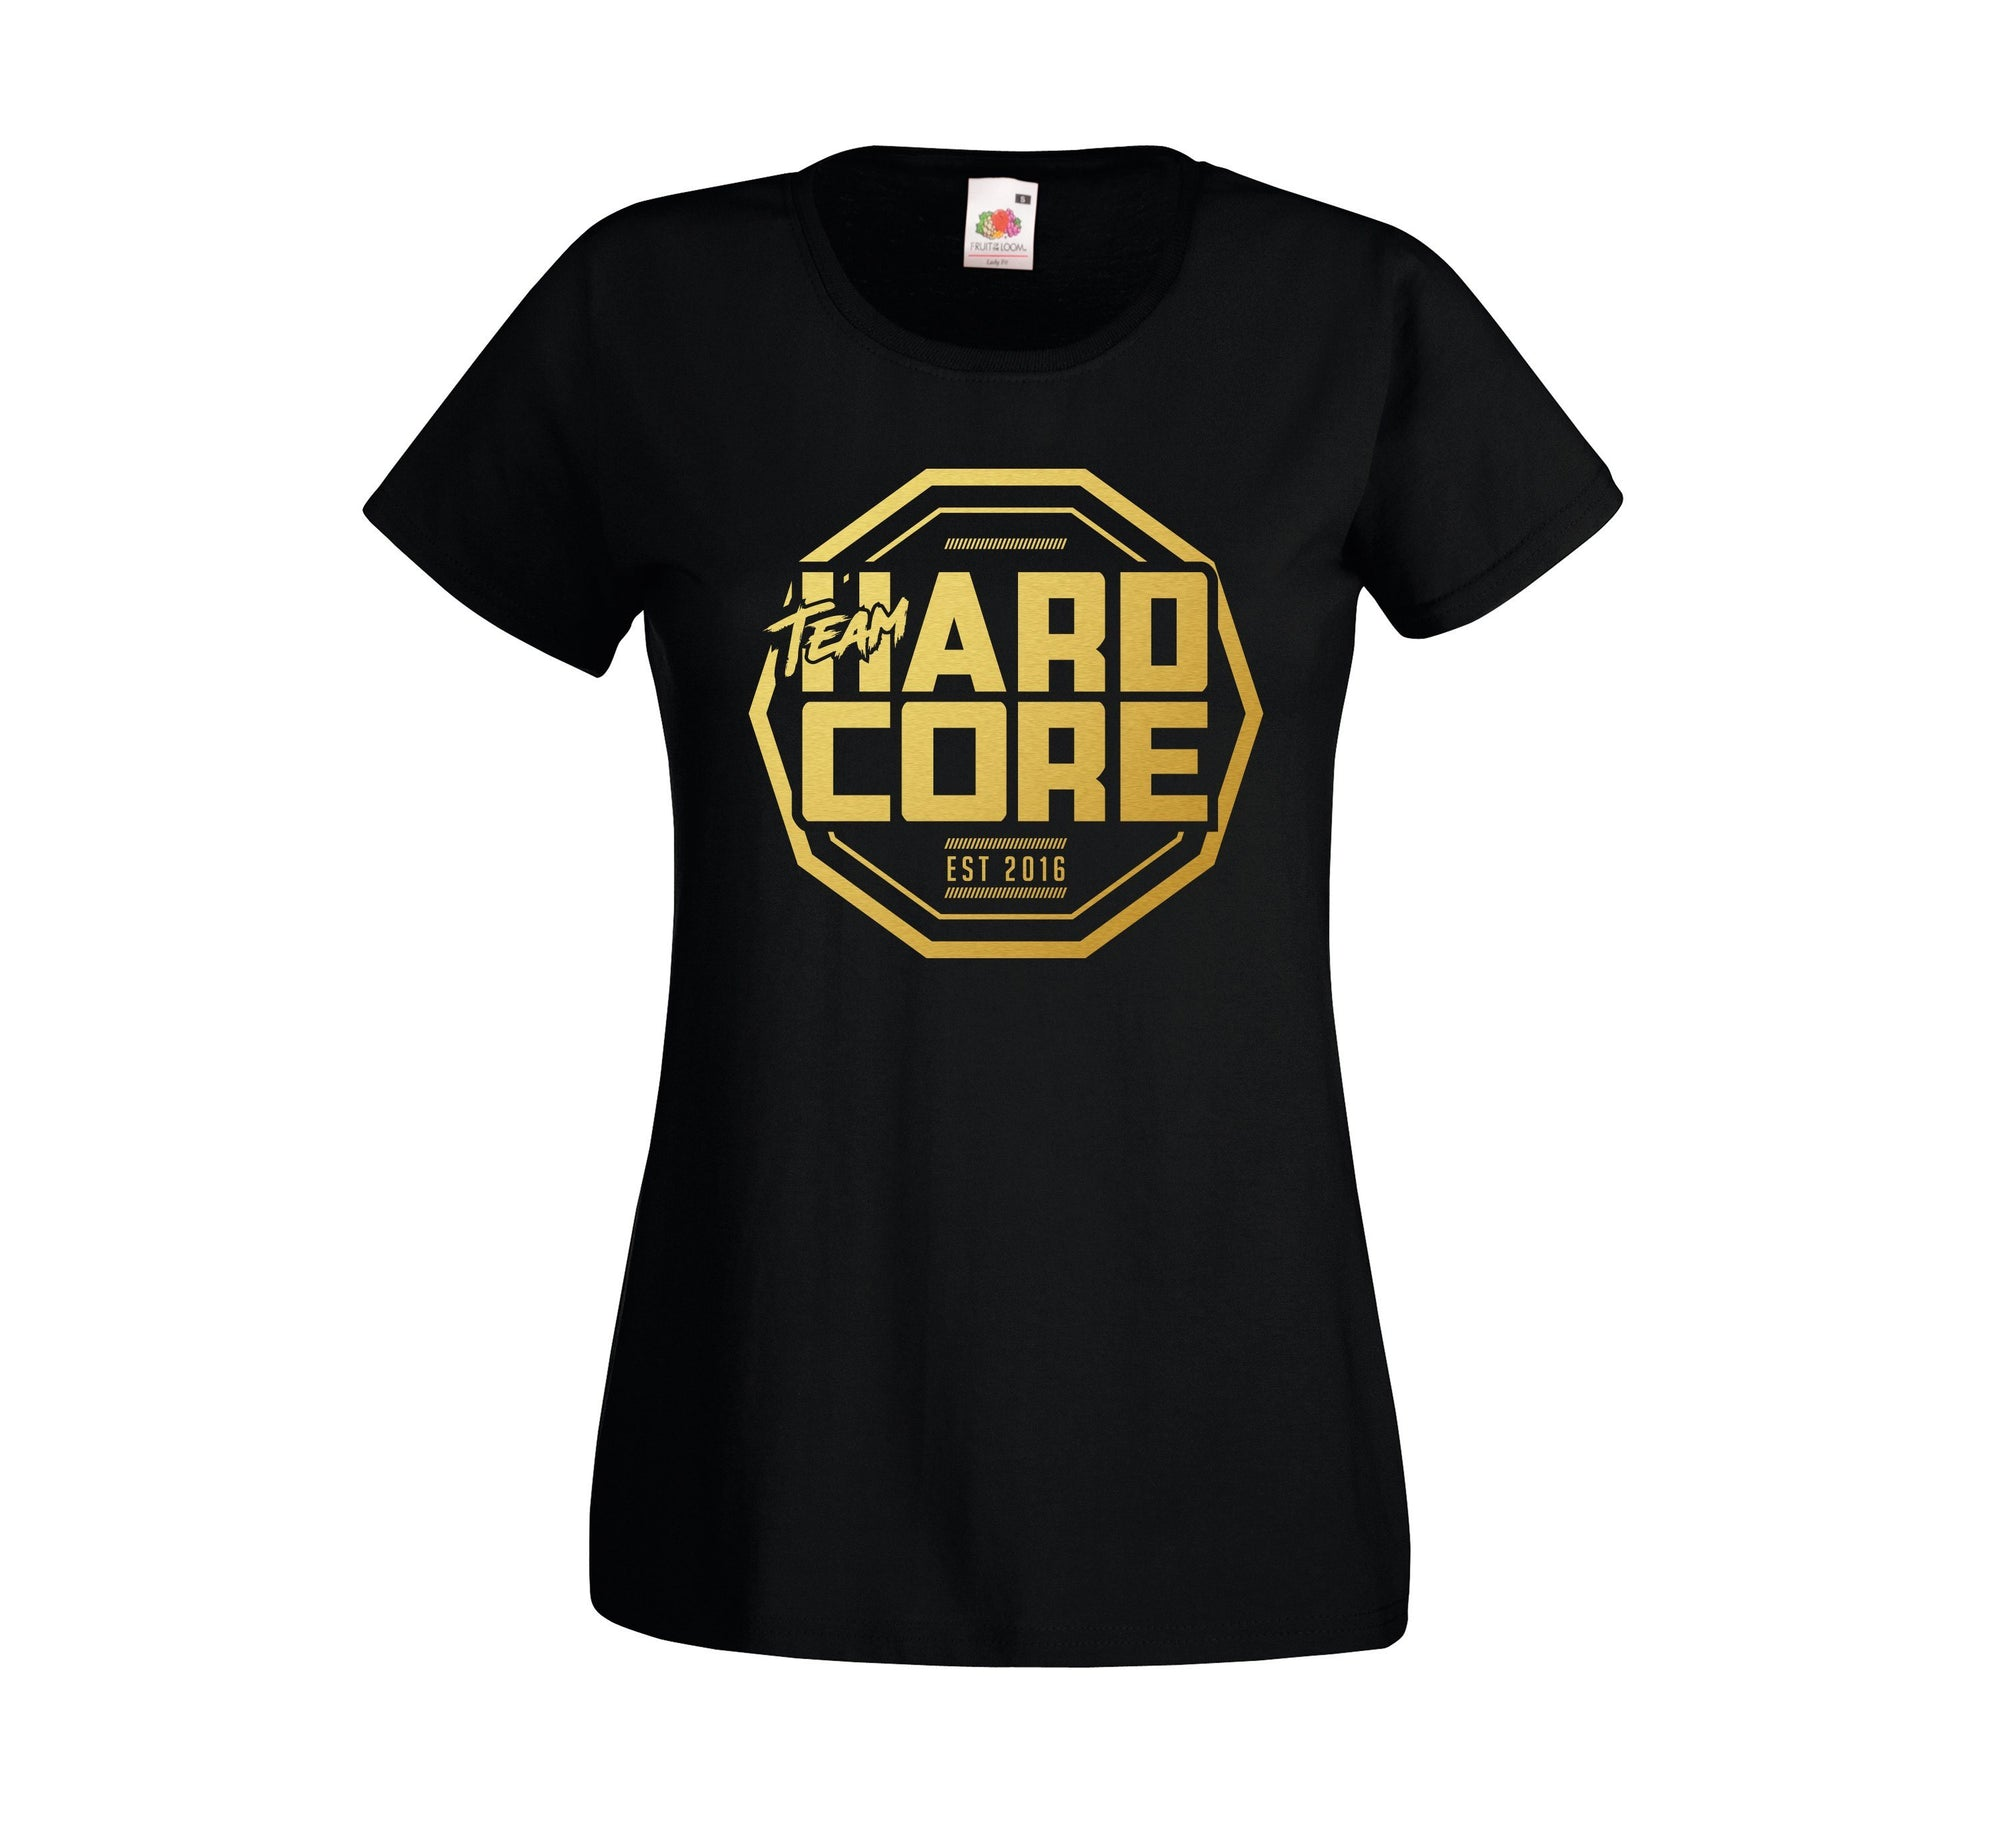 Team Hardcore Women's T-Shirt - Black & Gold Team Hardcore Small